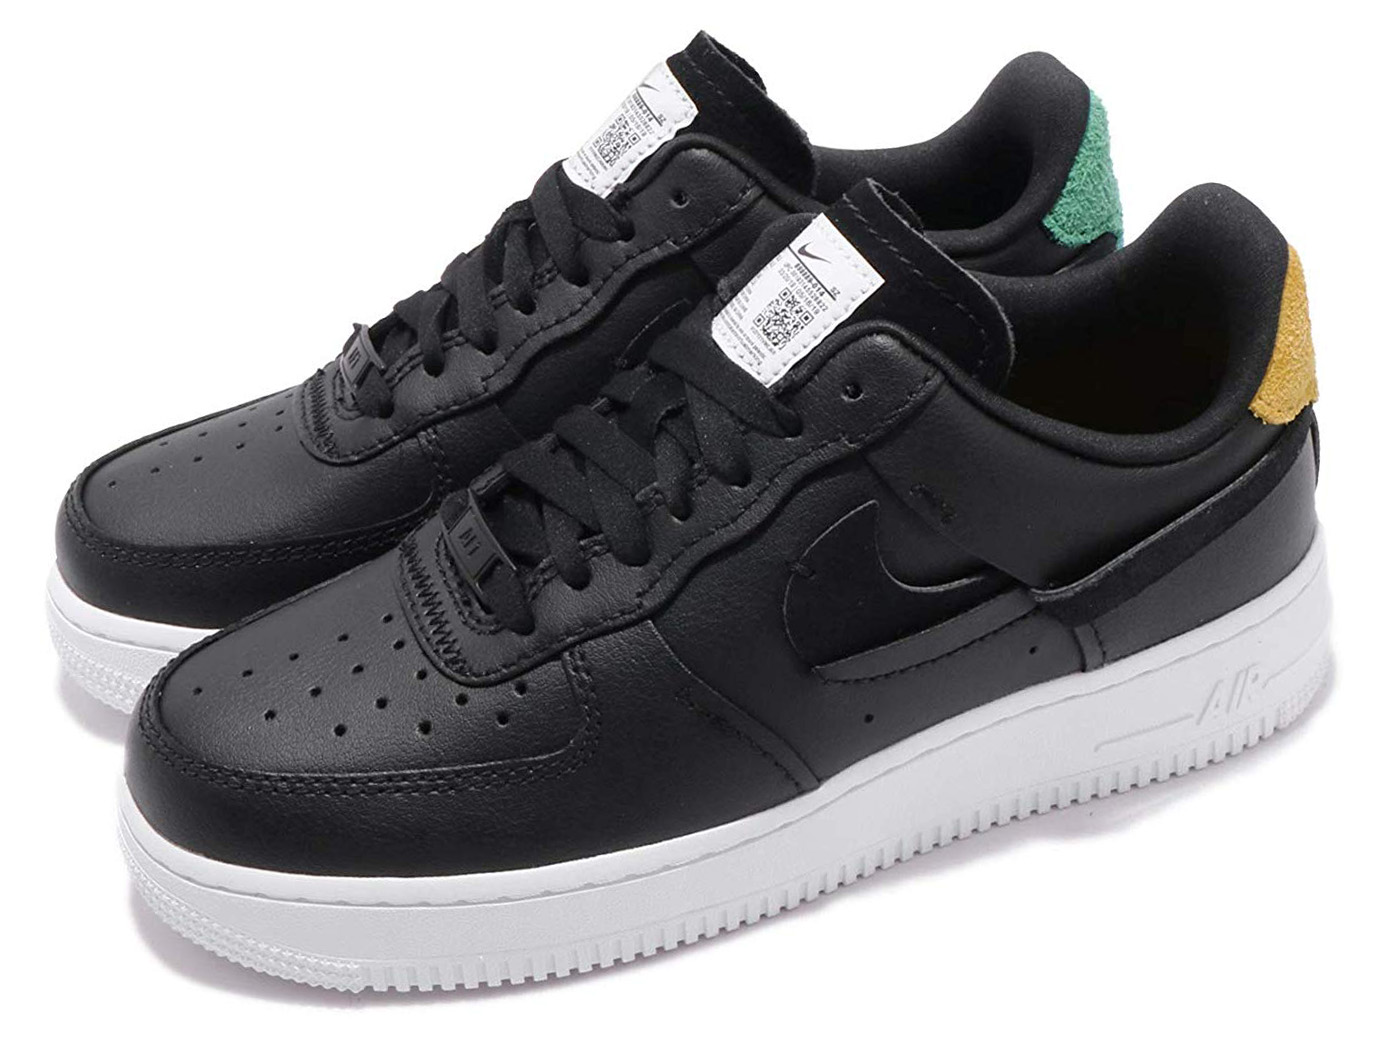 Best price on the market at italist | Nike Wmn's Air Force 1 '07 Lux blackanthracite mystic Green